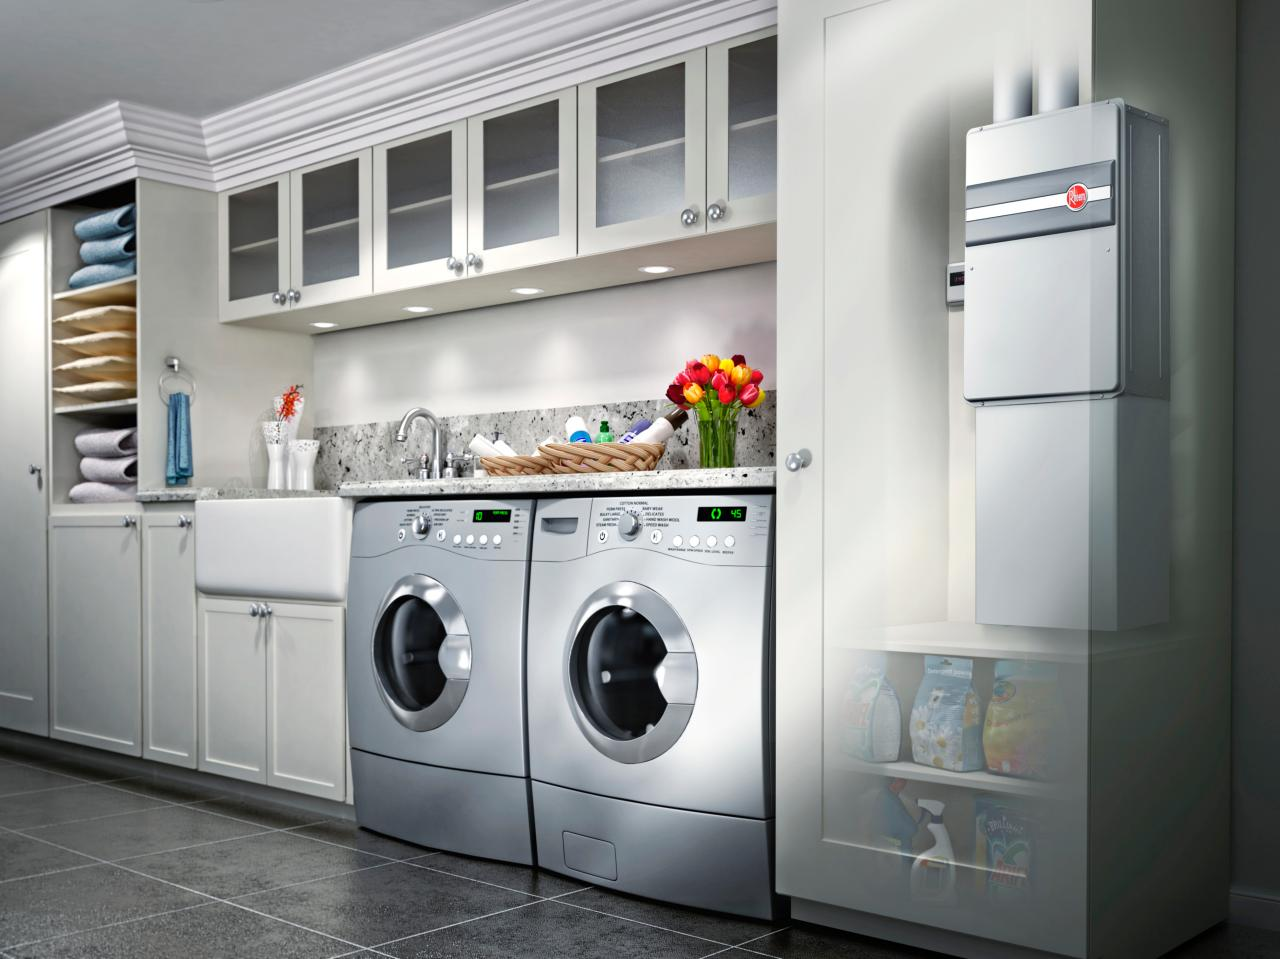 RX-Press-Kits_rheem-high-end-laundry-room-condensing-tankless-lg_s4x3.jpg.rend.hgtvcom.1280.960